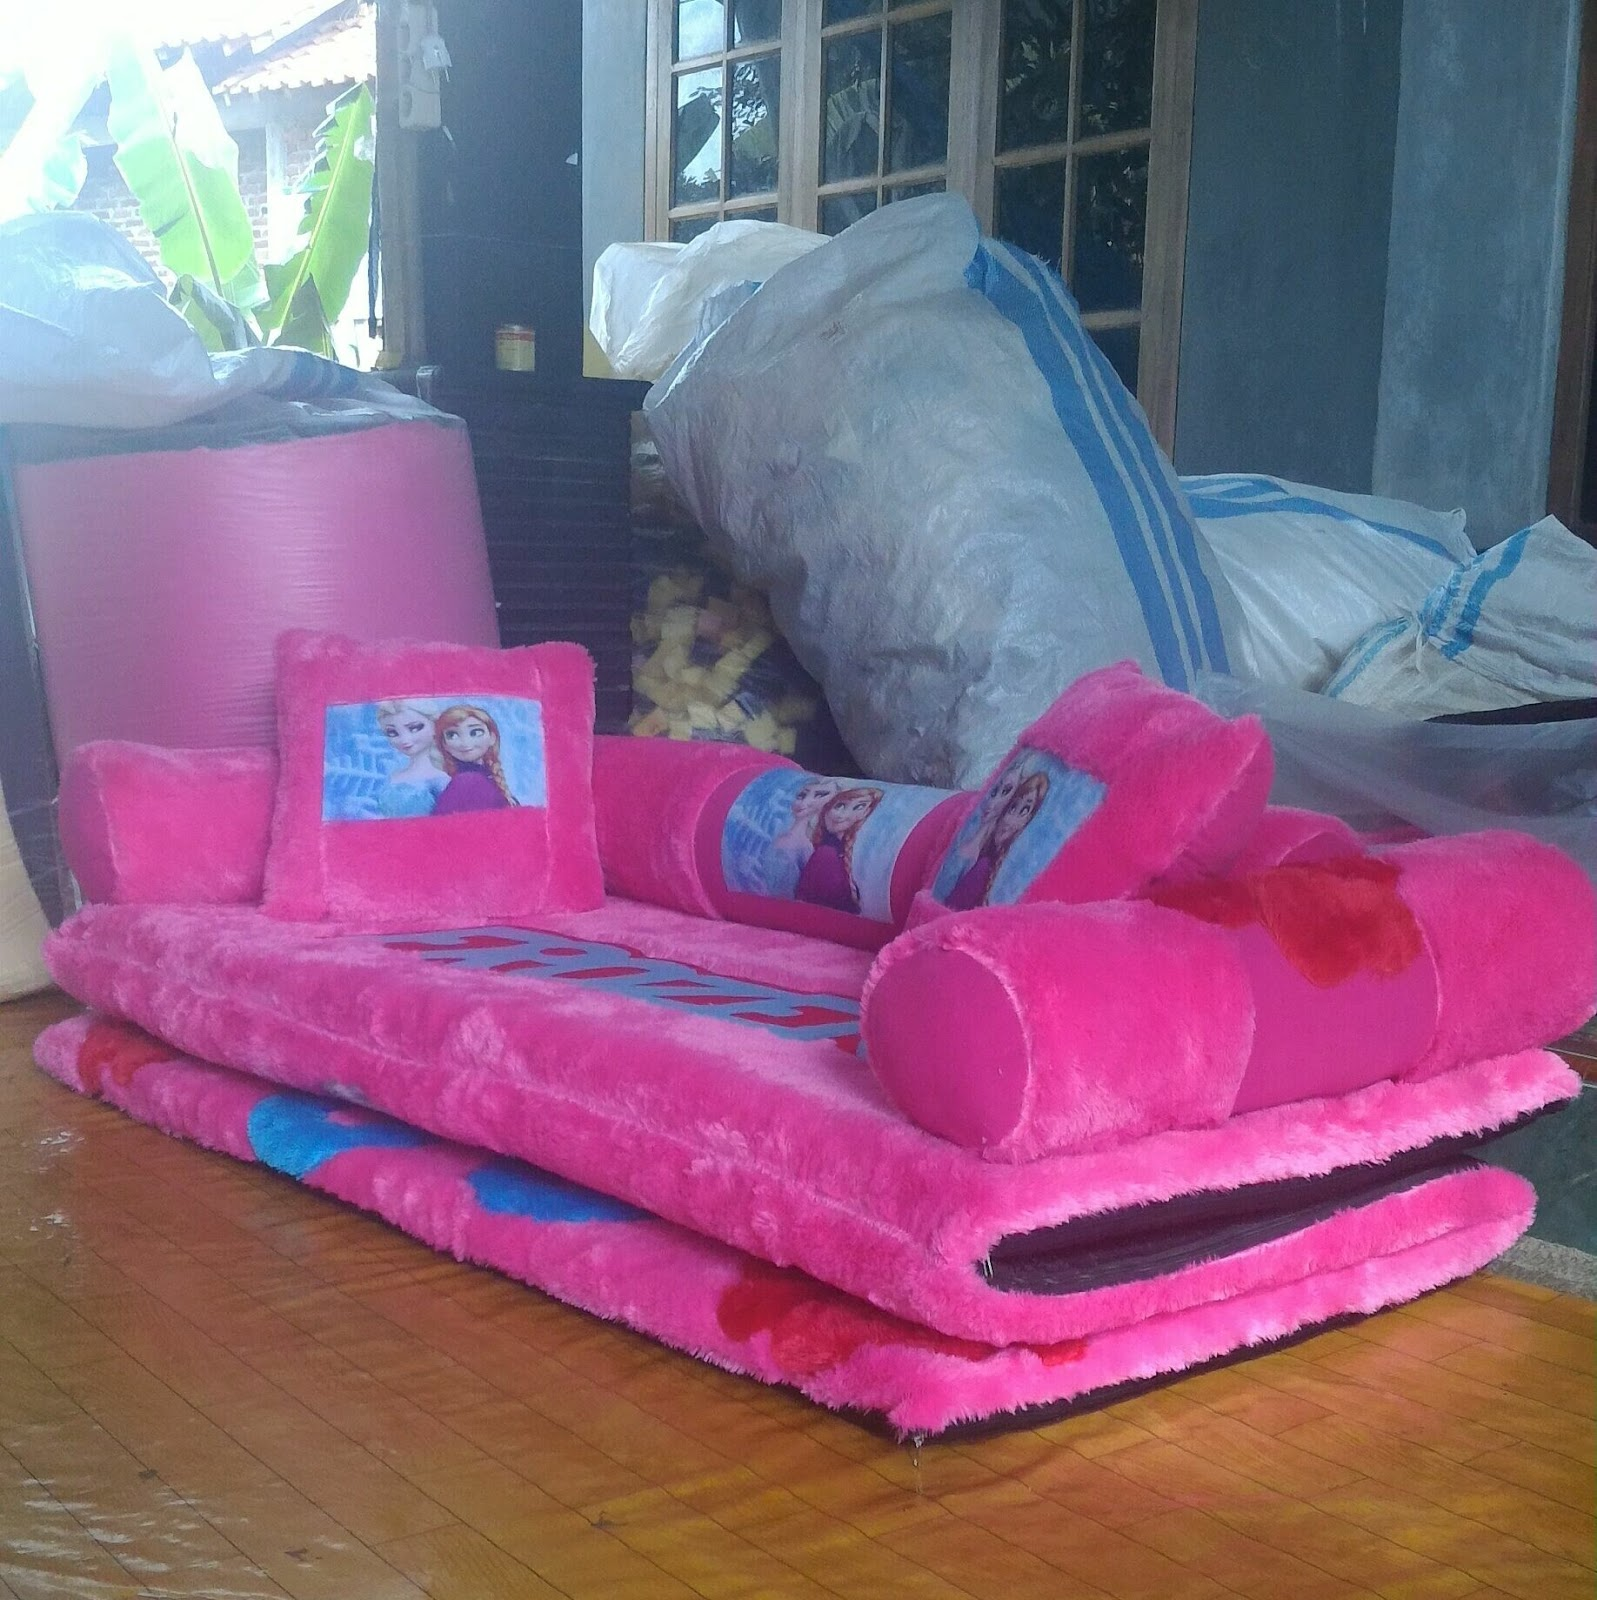 Jual Sofa Bed Rasfur Gambar Car Di Tuban